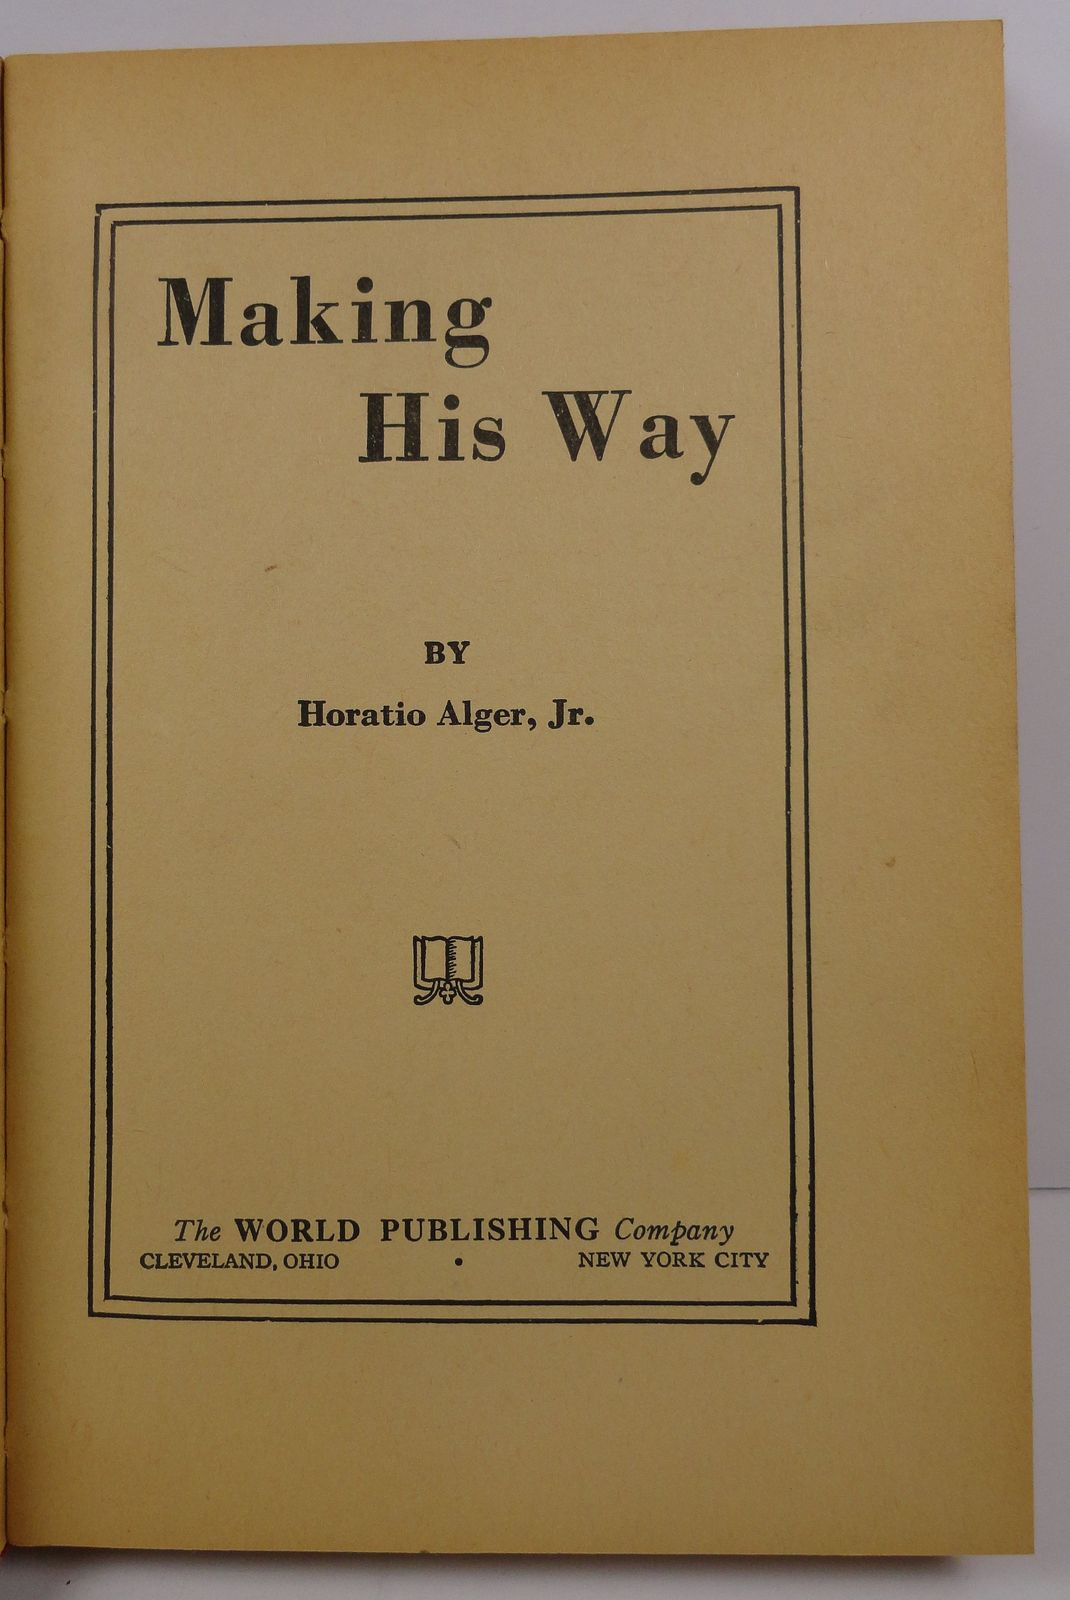 Making His Way by Horatio Alger, Jr. HC/DJ World Publishing